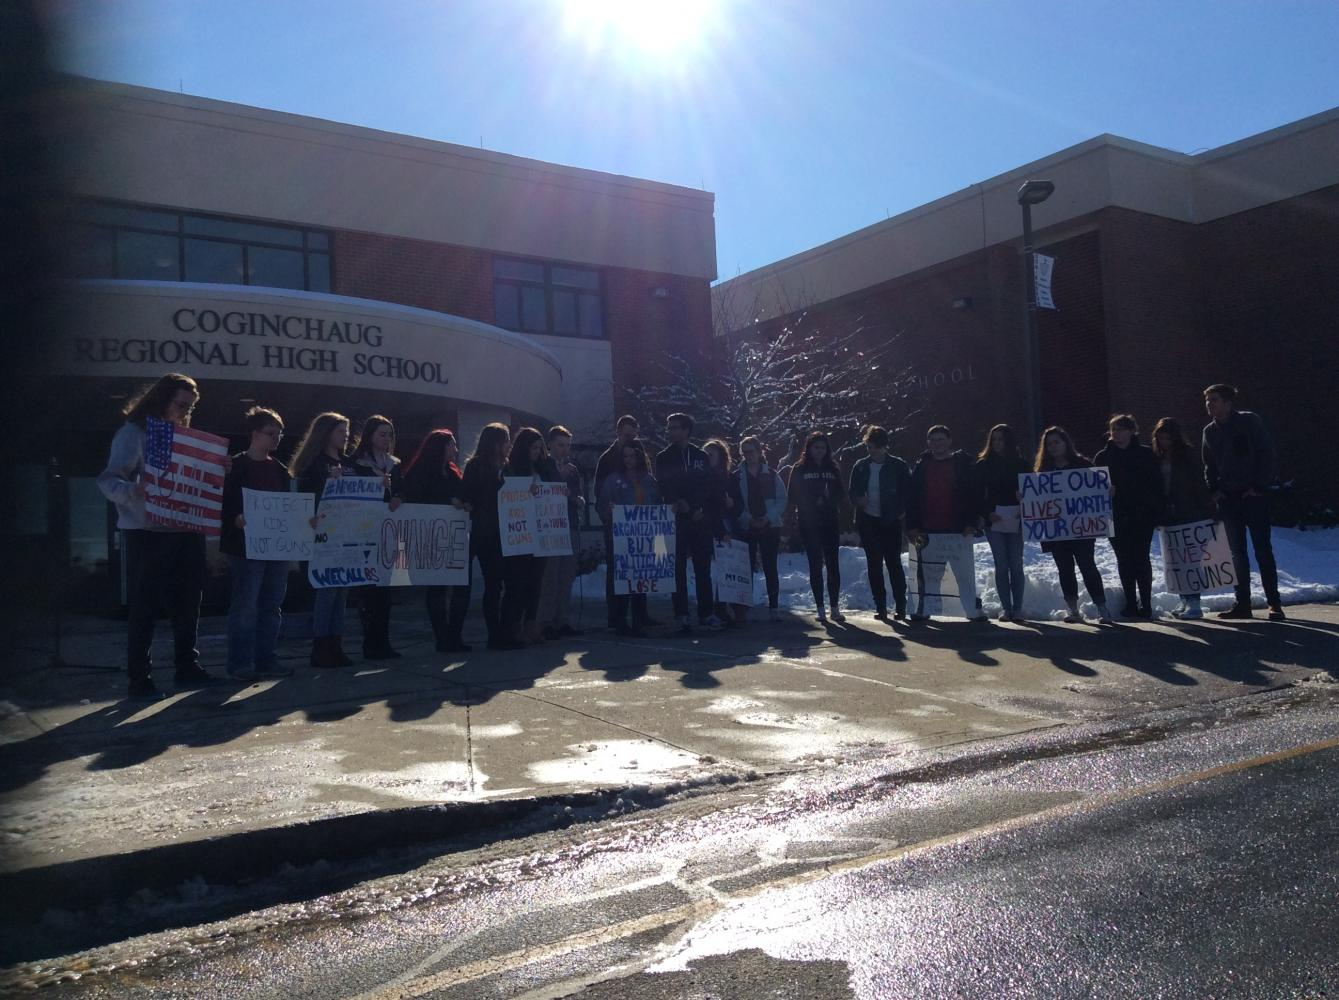 Coginchaug Students Participate in National School Walkout – March 14, 2018